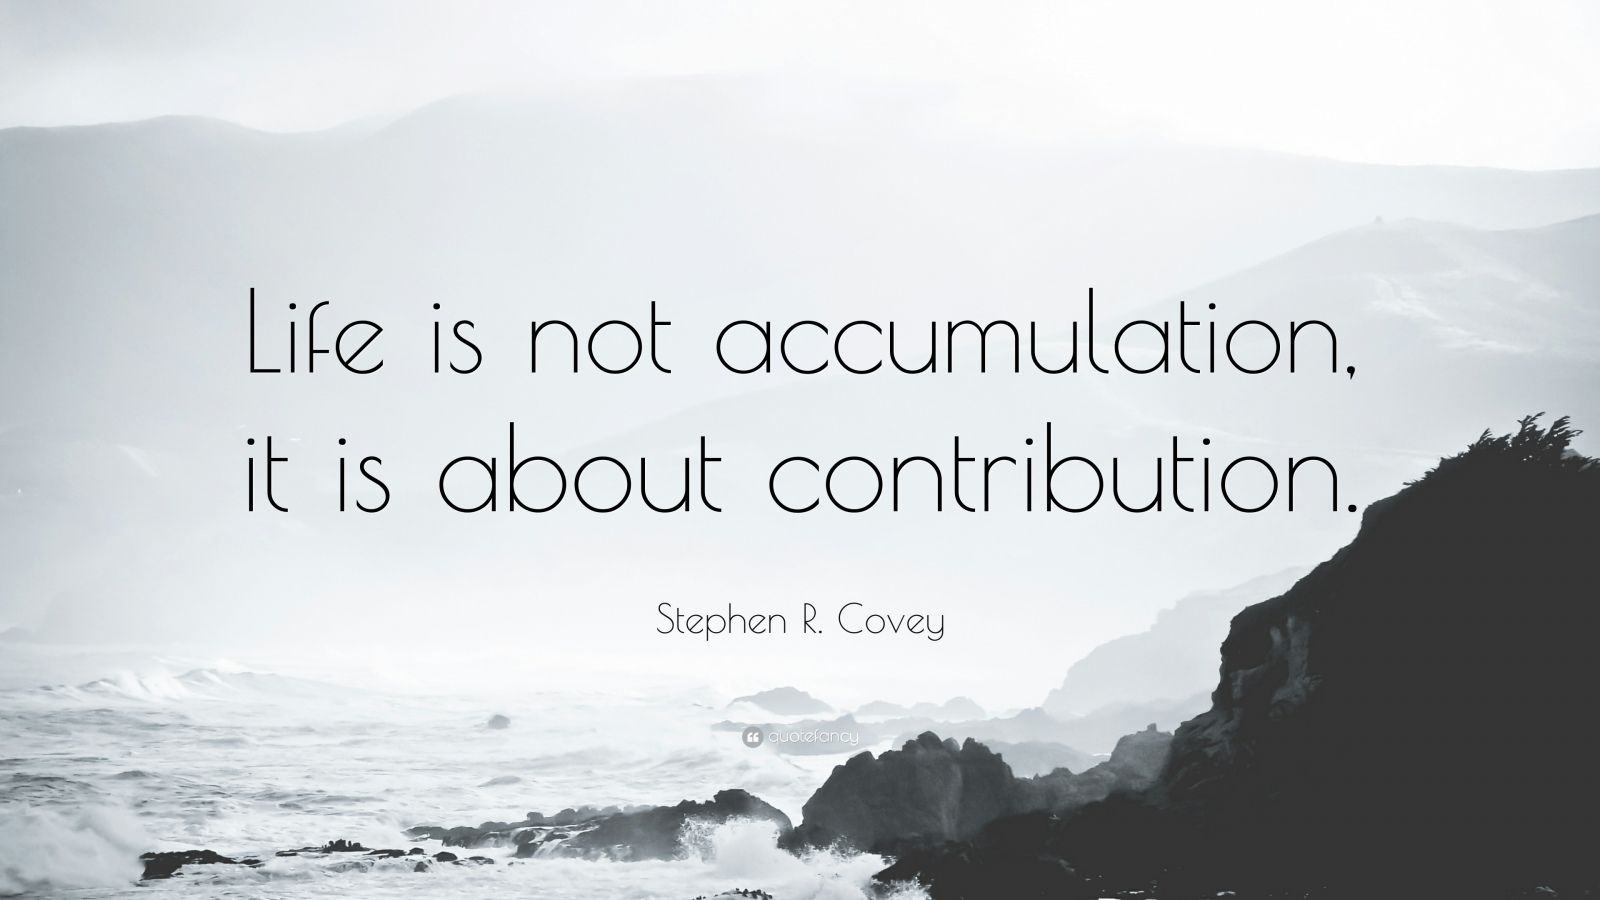 """Stephen R. Covey Quote: """"Life is not accumulation, it is about contribution."""""""